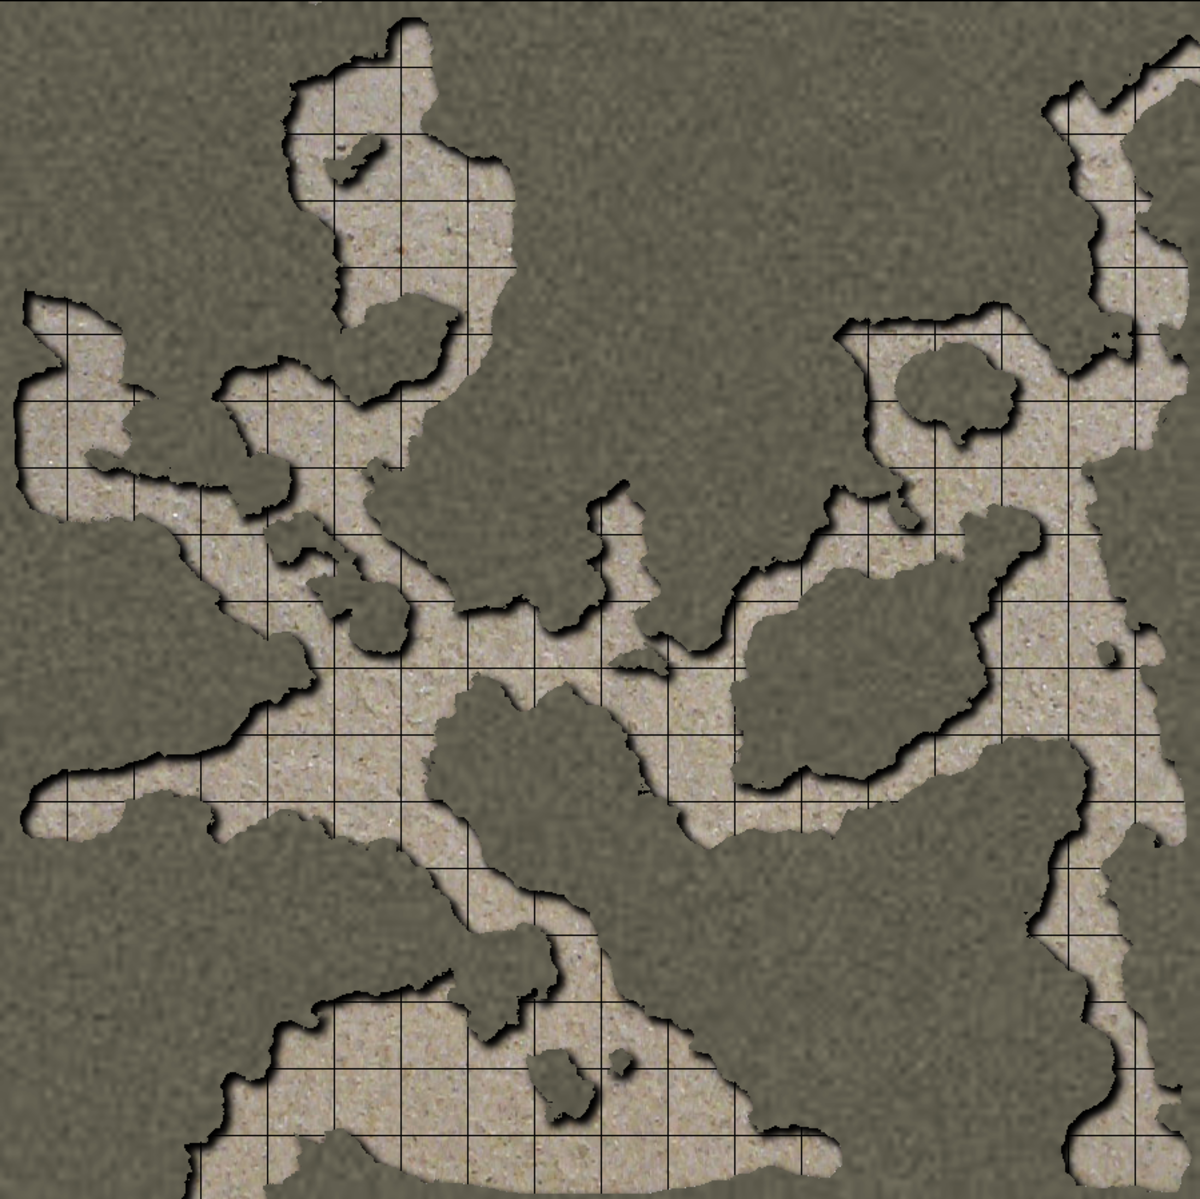 Creating Fantasy Maps With GIMP: Caverns